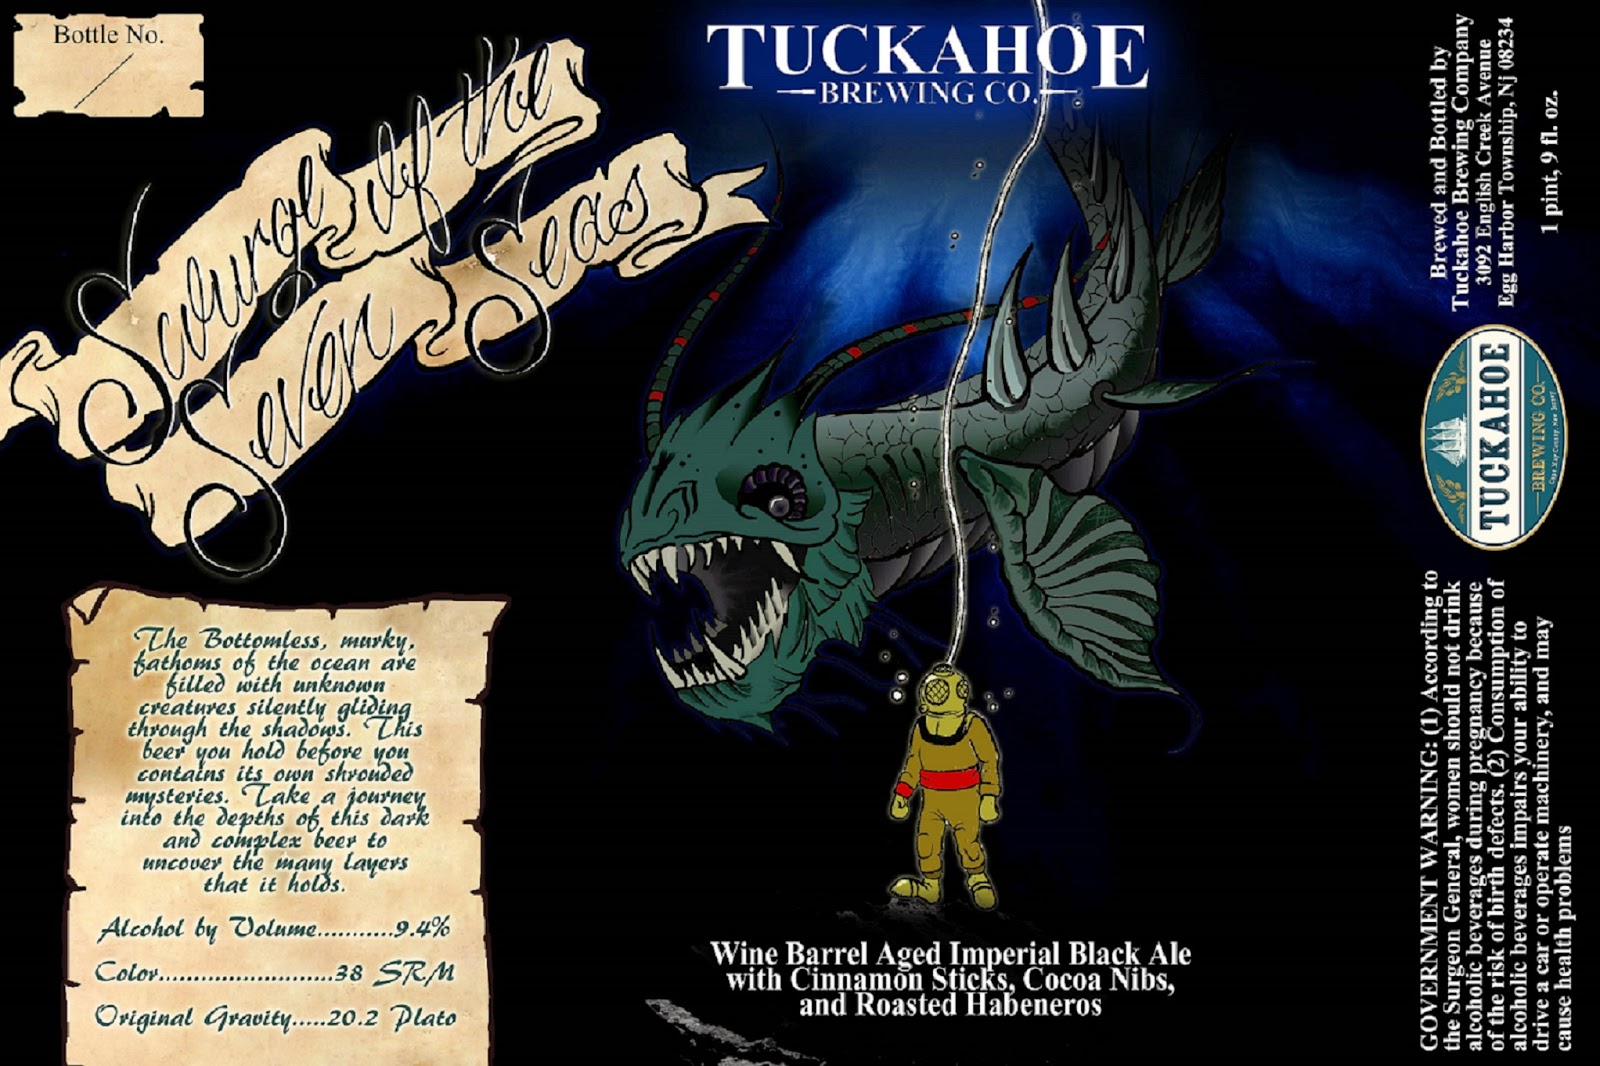 Tuckahoe Brewing, New Jersey, Beer, Scourge of the Seven Seas